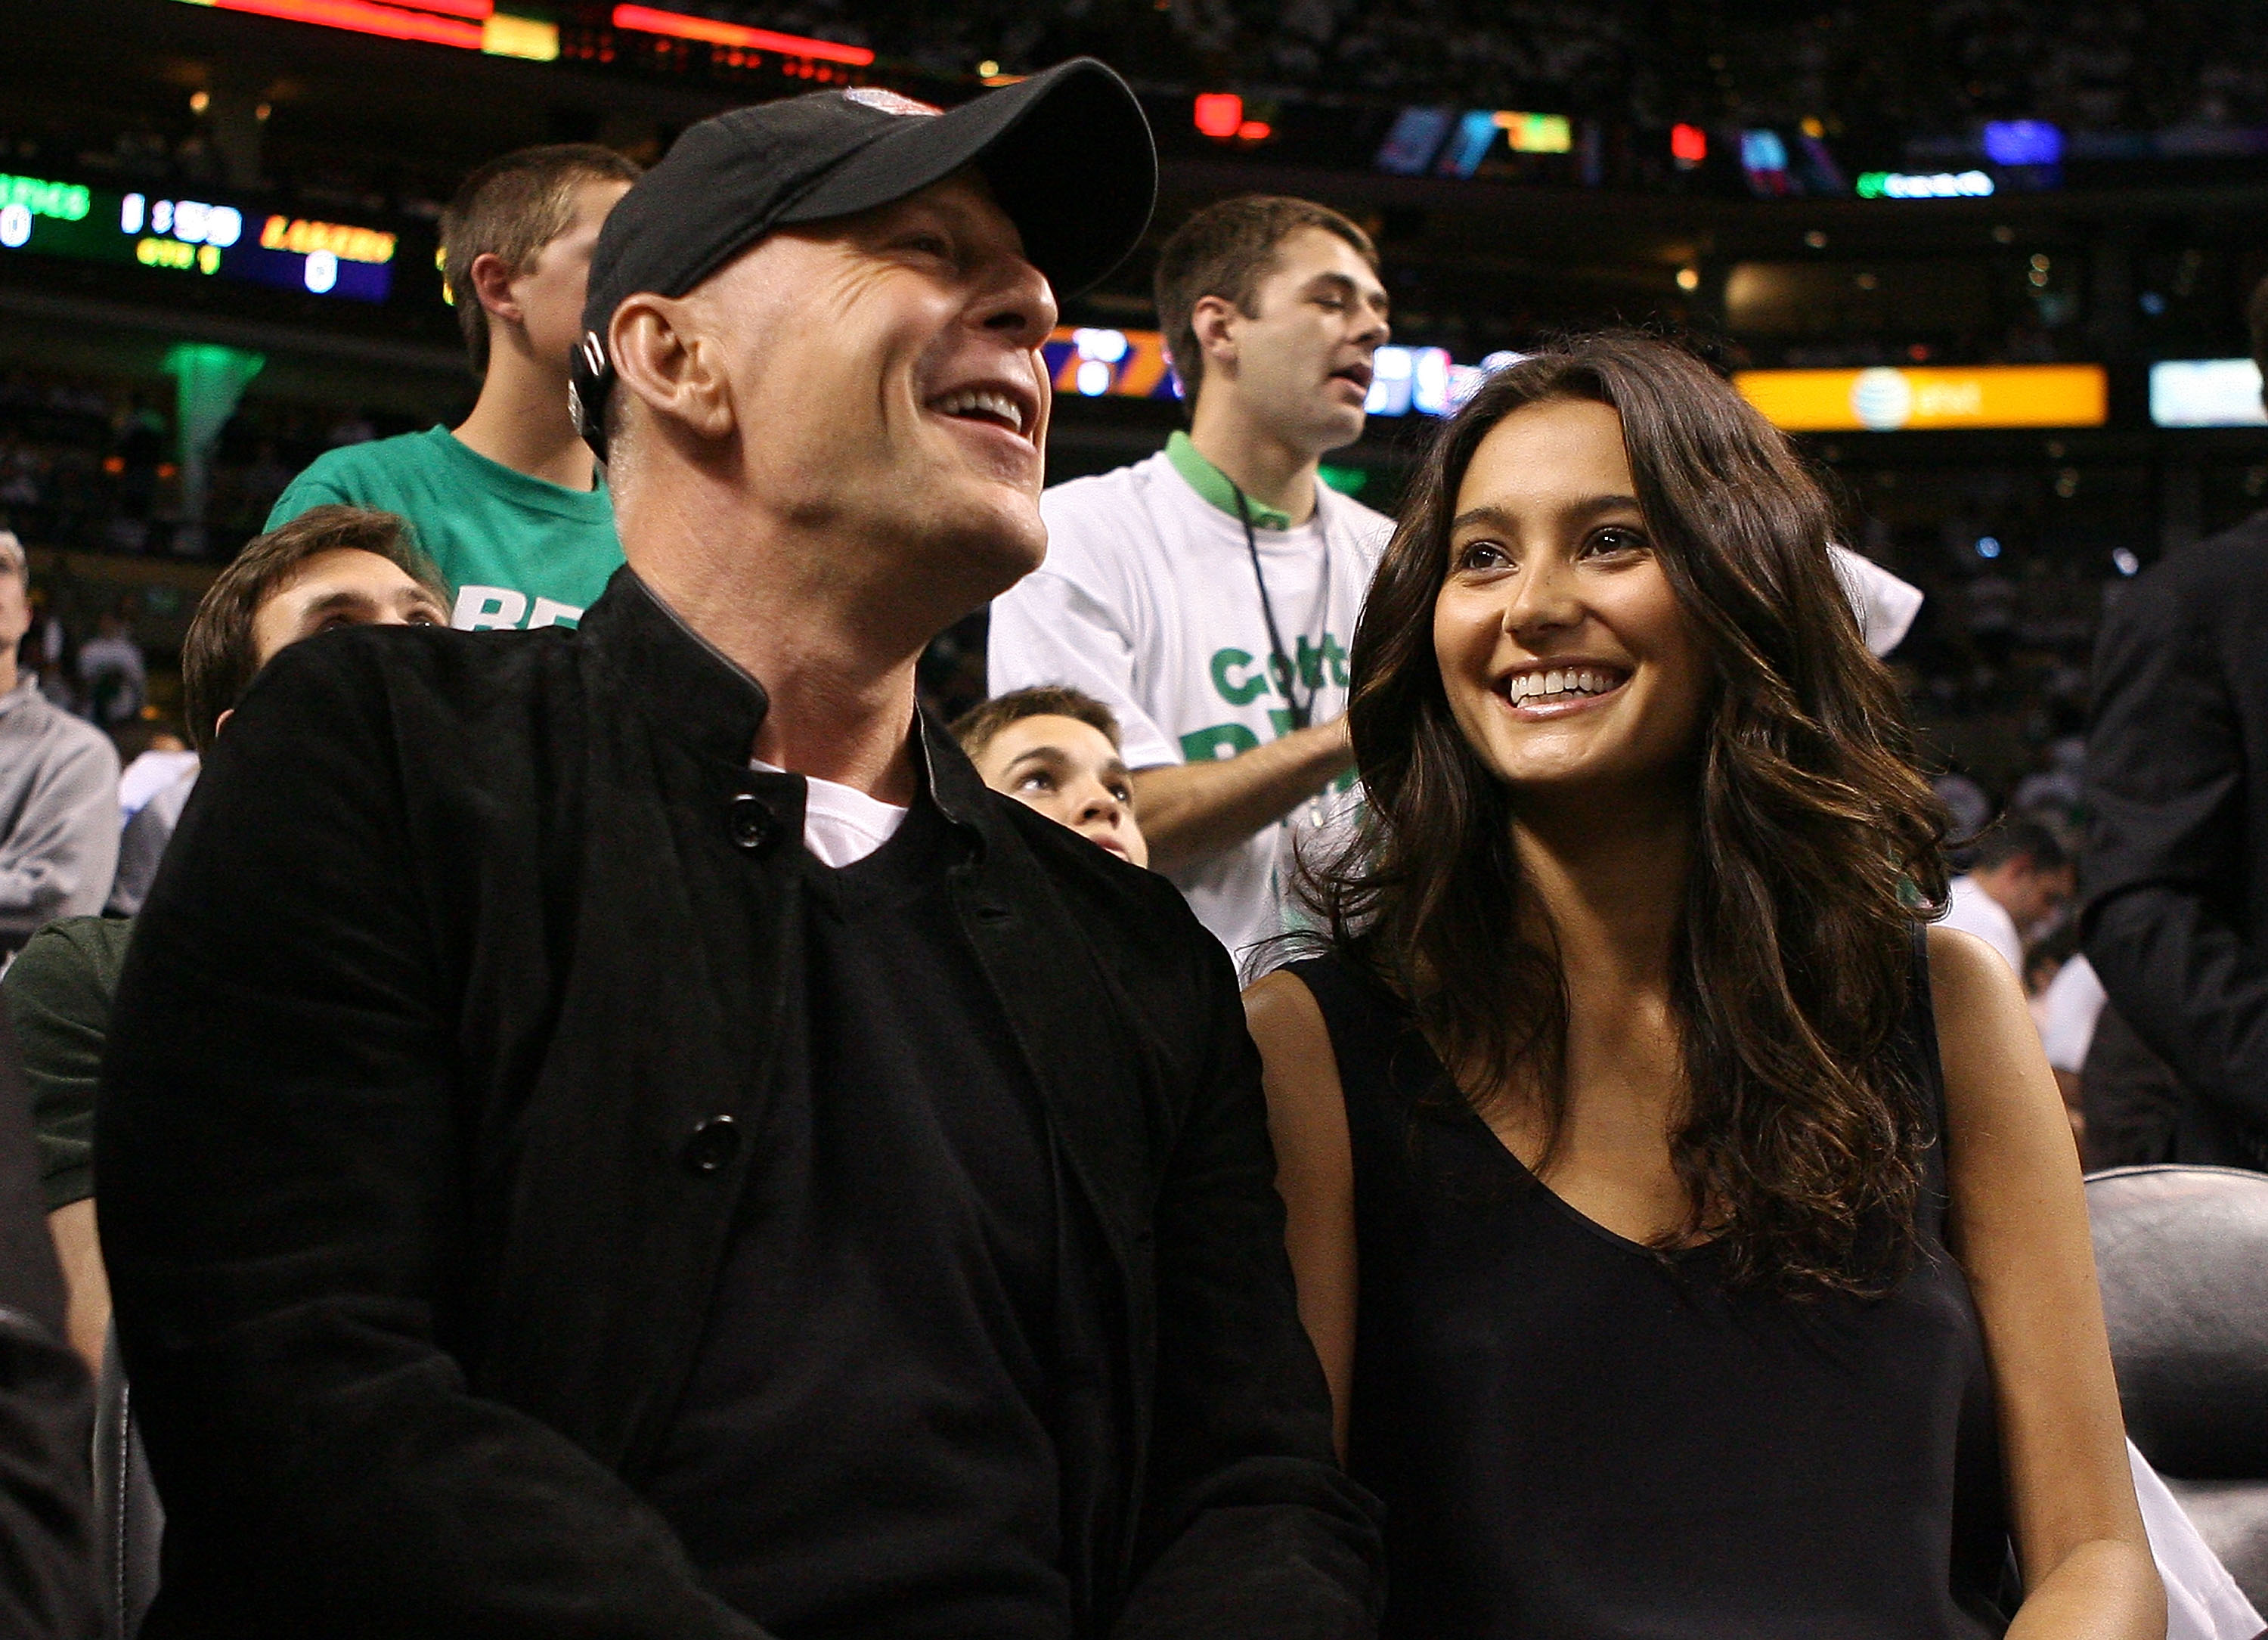 Bruce Willis goes courting at the basketball game